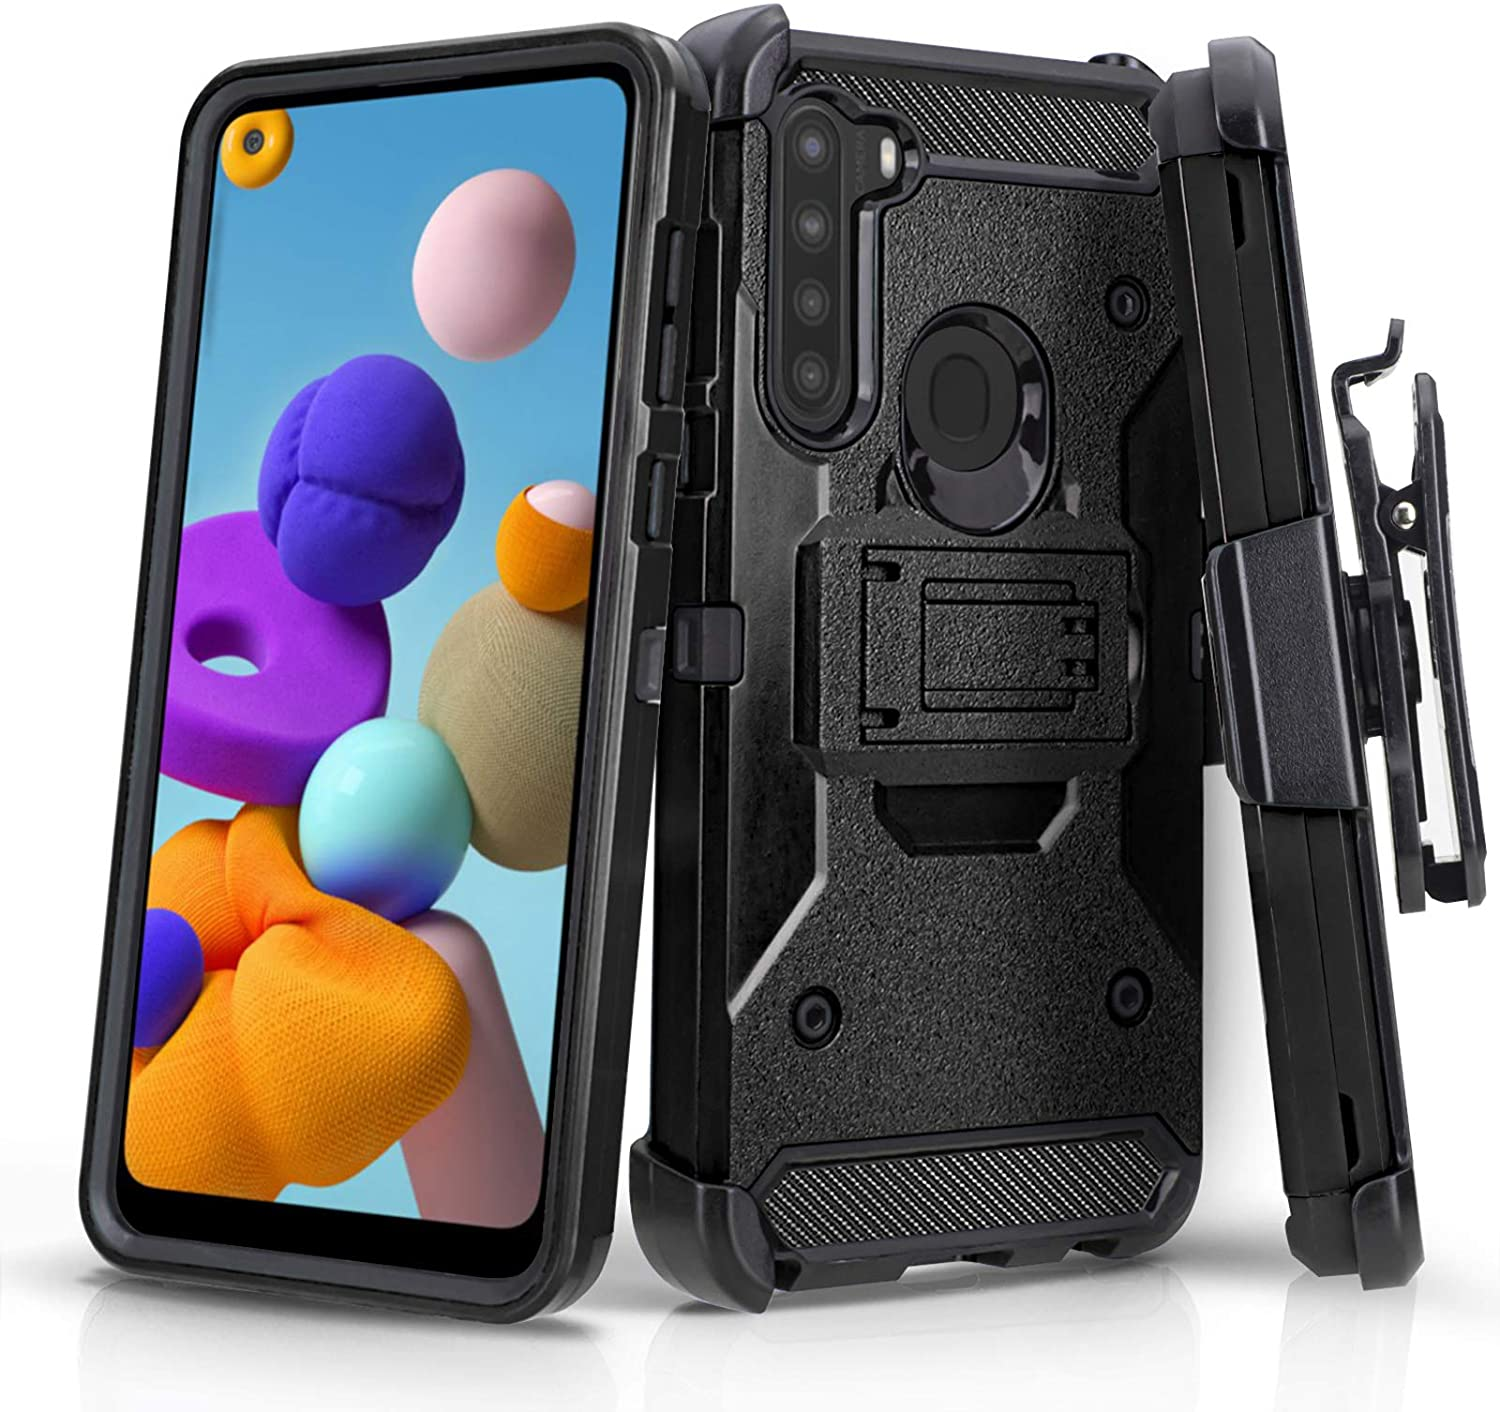 CasemartUSA Phone Case for [Samsung Galaxy A21], [Tank Series][Black] Shockproof Cover with Built-in Kickstand & Belt Clip Holster for Samsung Galaxy A21 (Verzion, Boost Mobile, T-Mobile, Metro)